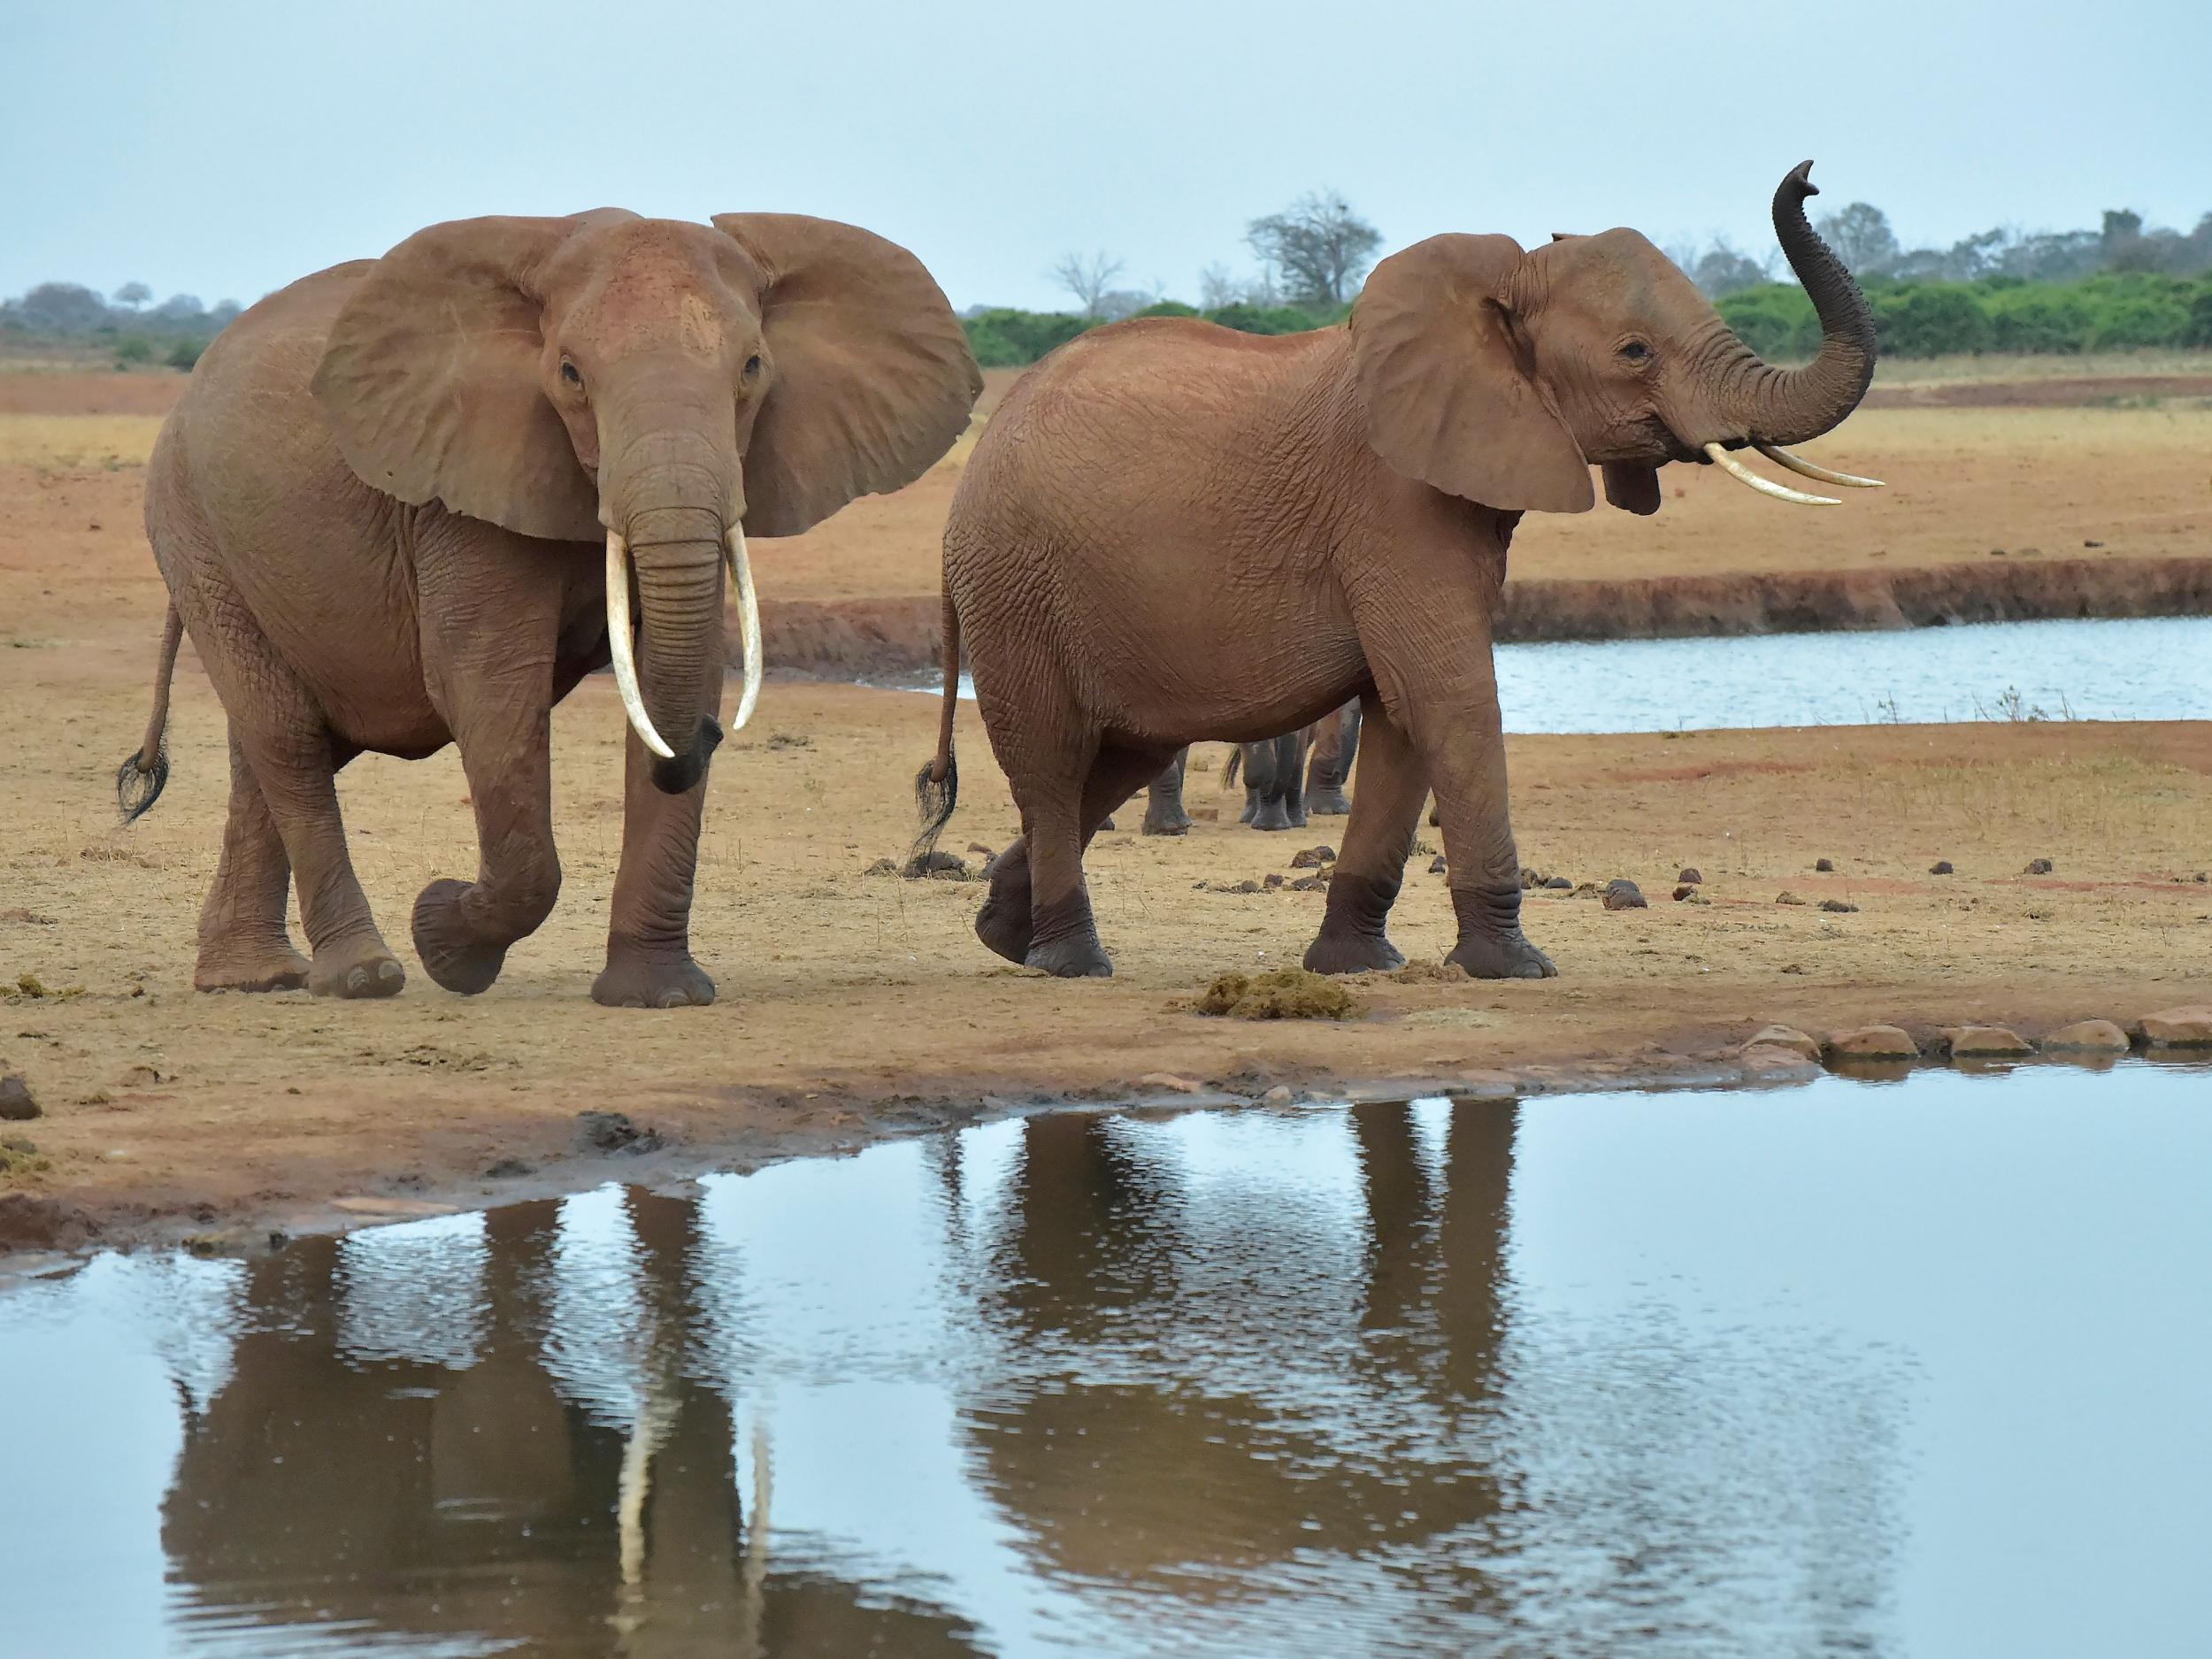 Ivory Trade - latest news, breaking stories and comment